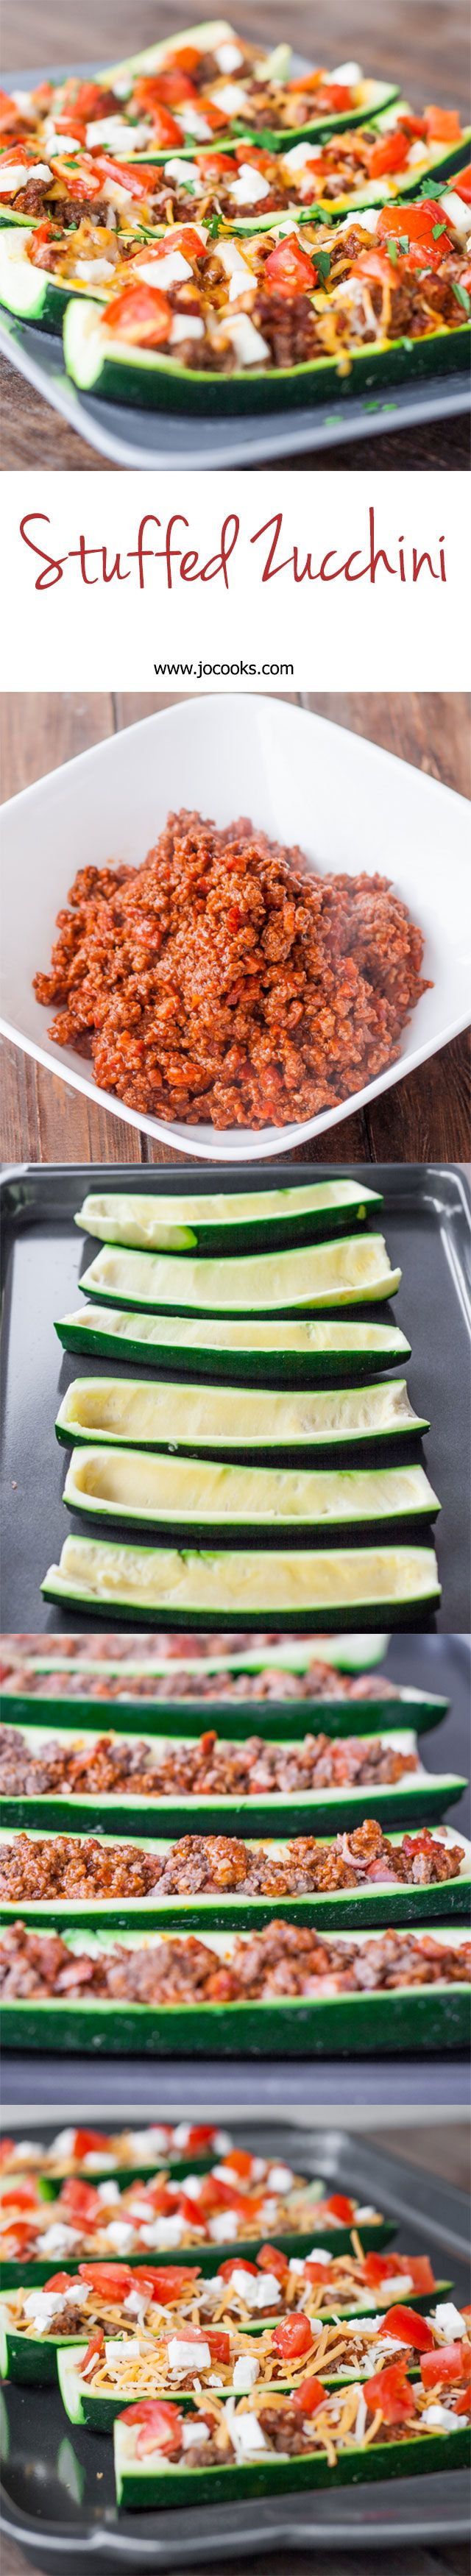 Stuffed Zucchini-substitute the ground beef for ground turkey to make it a leaner meal!! Yum! Def going to be making this SOON!!